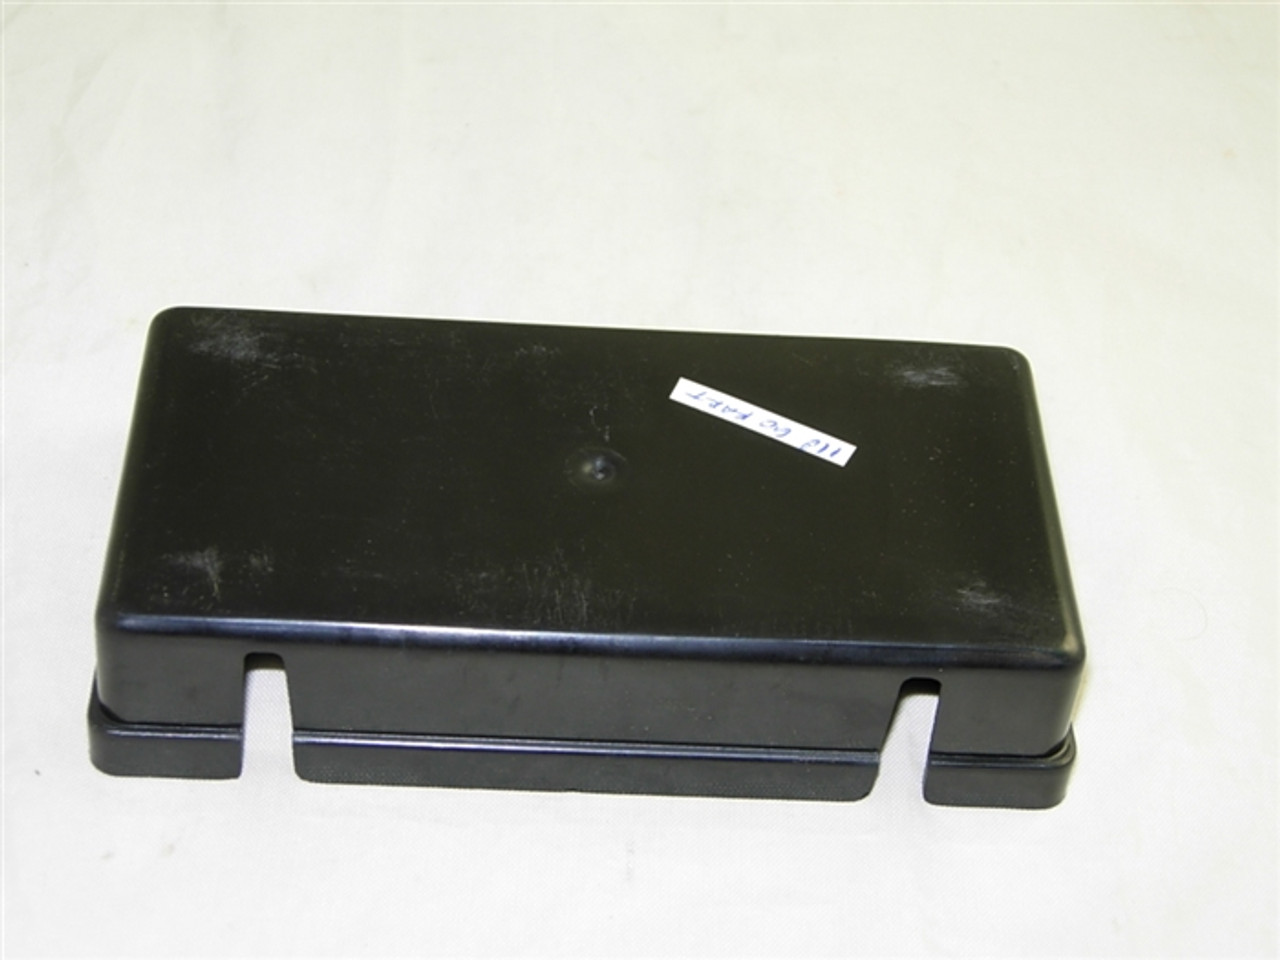 BATTERY COVER 11806-A101-6